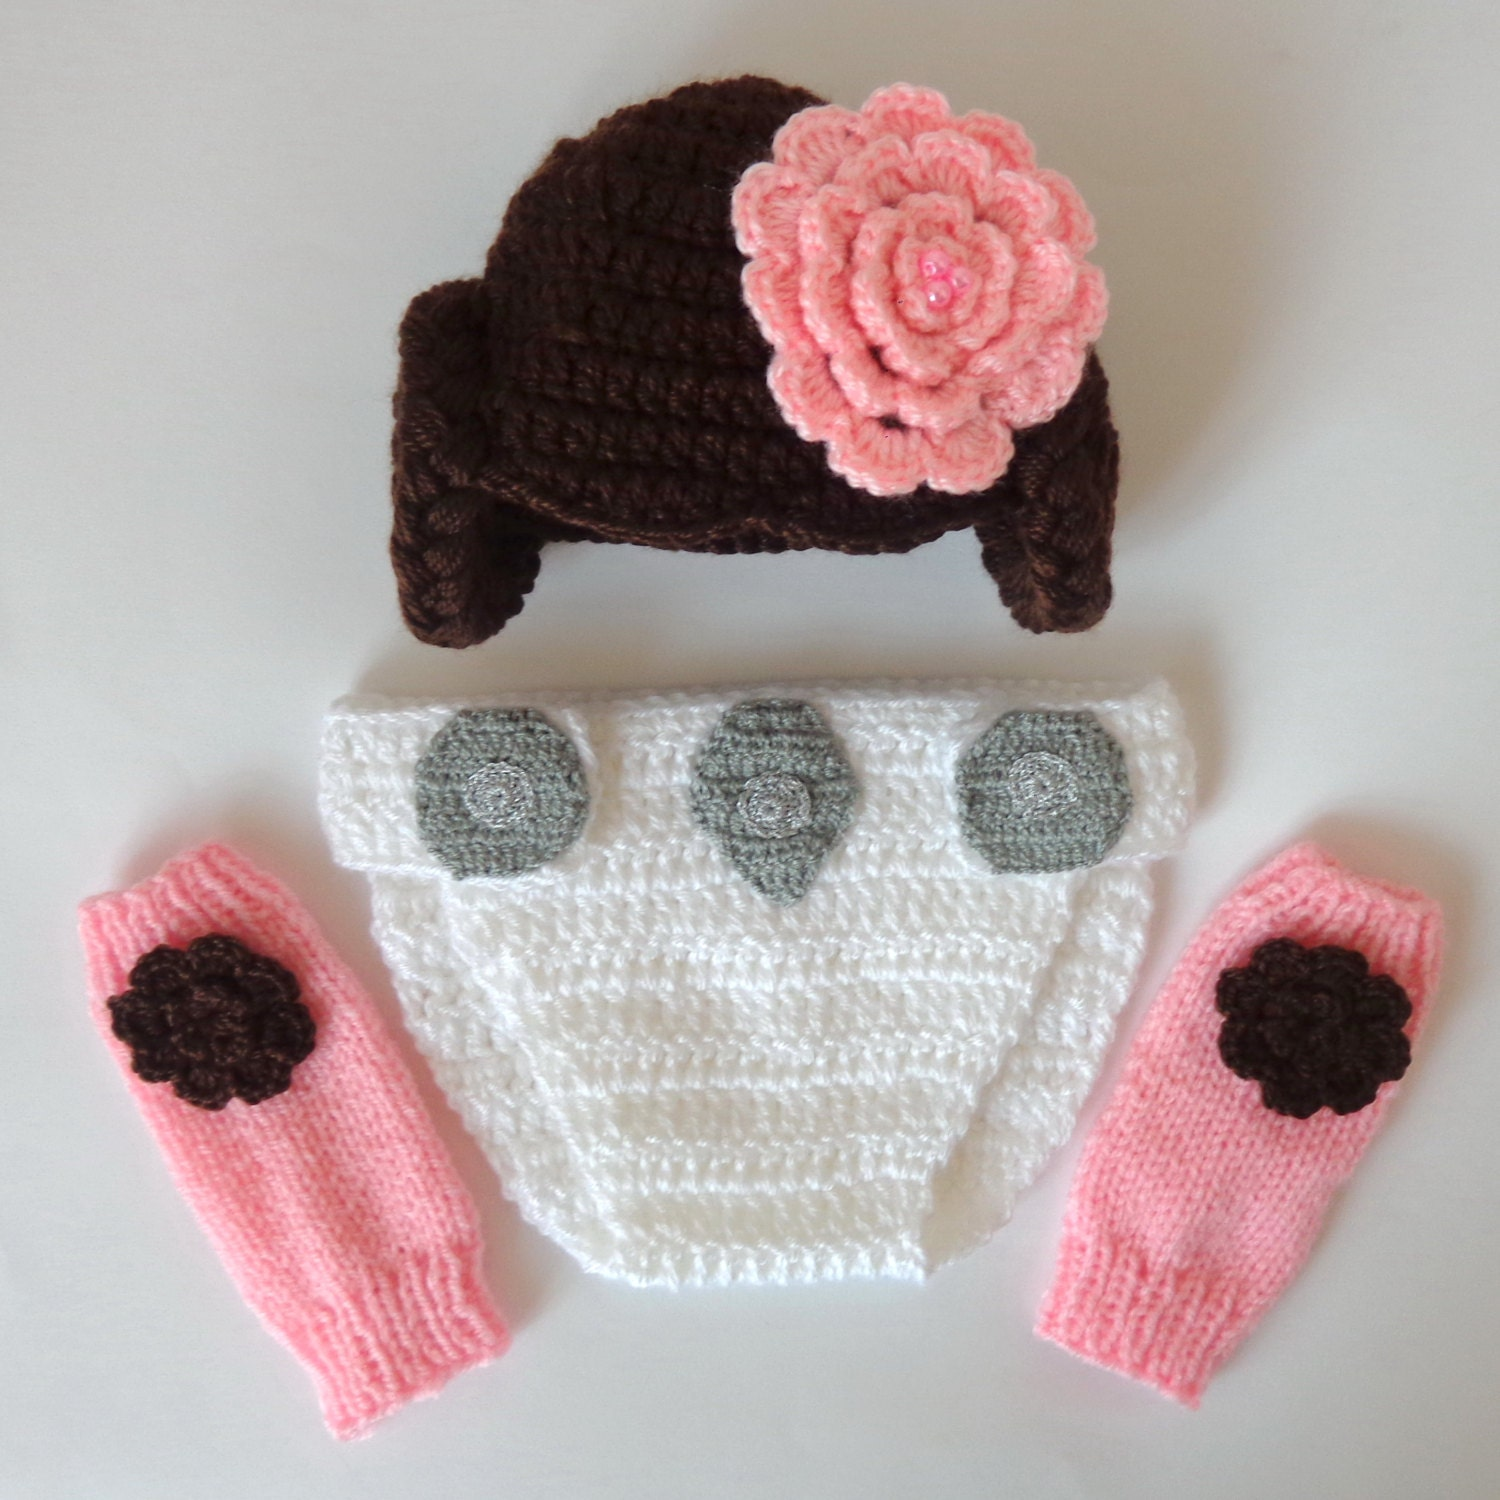 Princess leia crochet baby hat pattern manet for princess leia costume set 3pcs baby hat diaper cover and leg princess leia crochet baby hat pattern star wars crochet patterns free bankloansurffo Choice Image